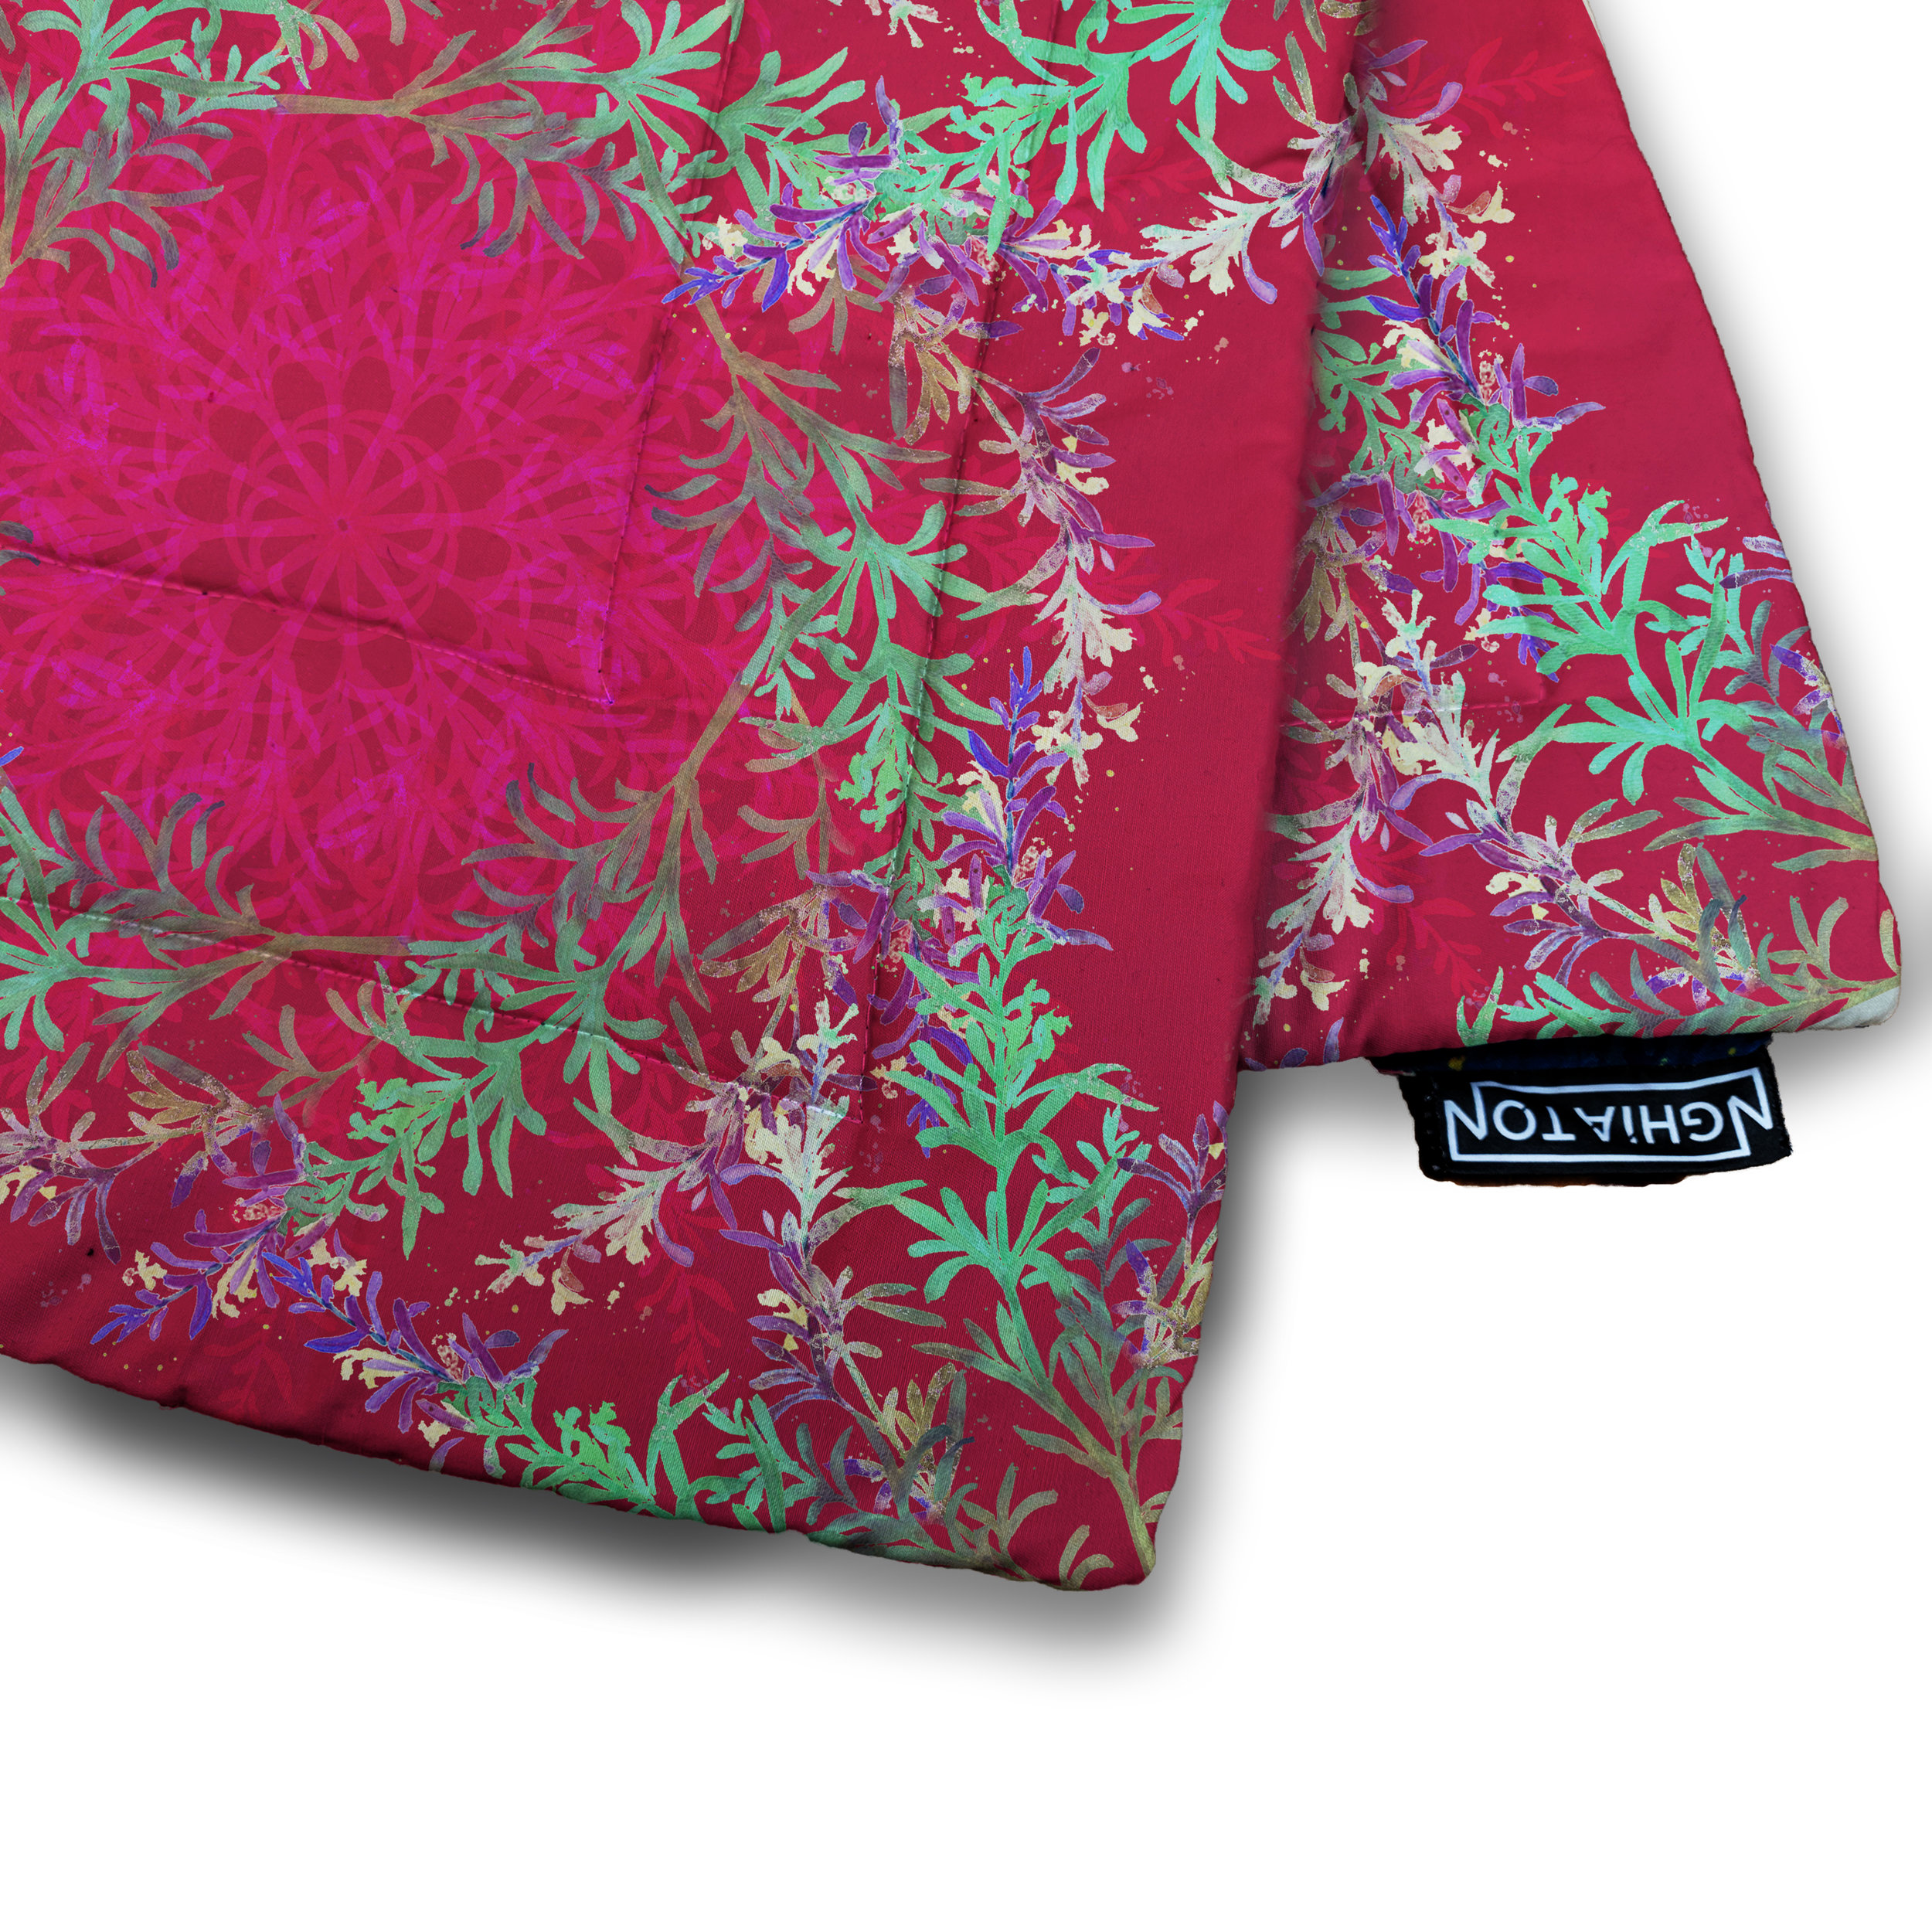 Jester Rosemary Quilted Blanket from £58